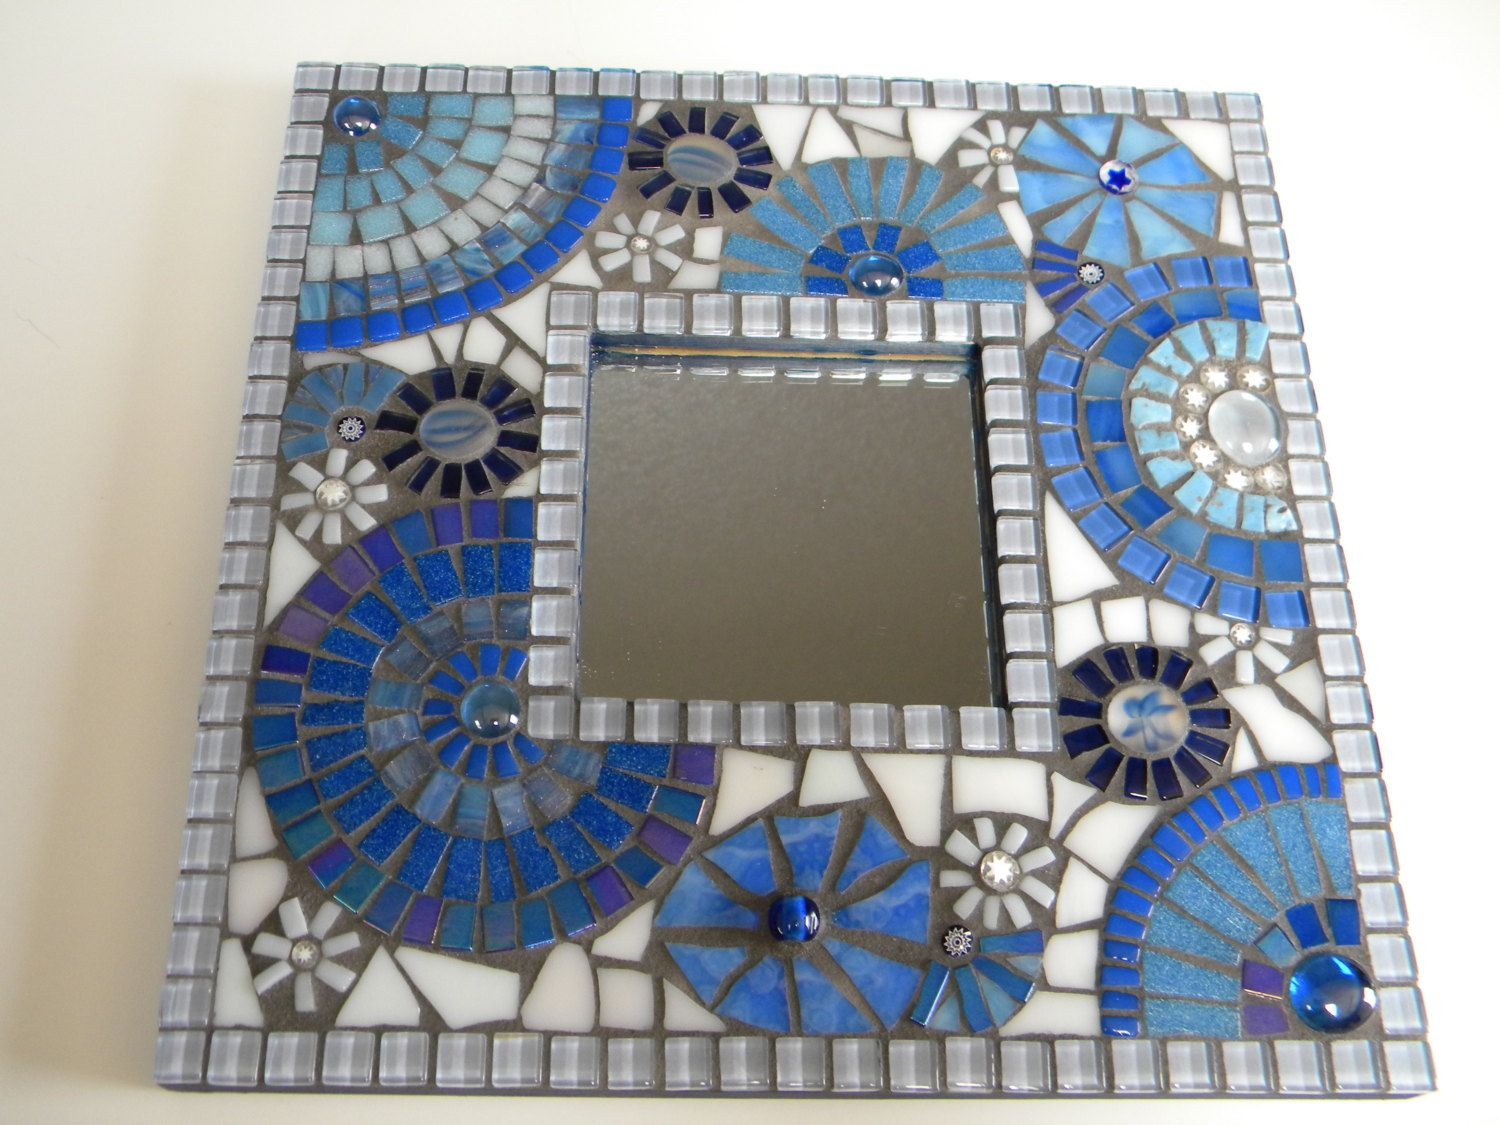 Spiegel Mosaik Blue & White Square Mosaic Mirror - Original Art | Mosaics